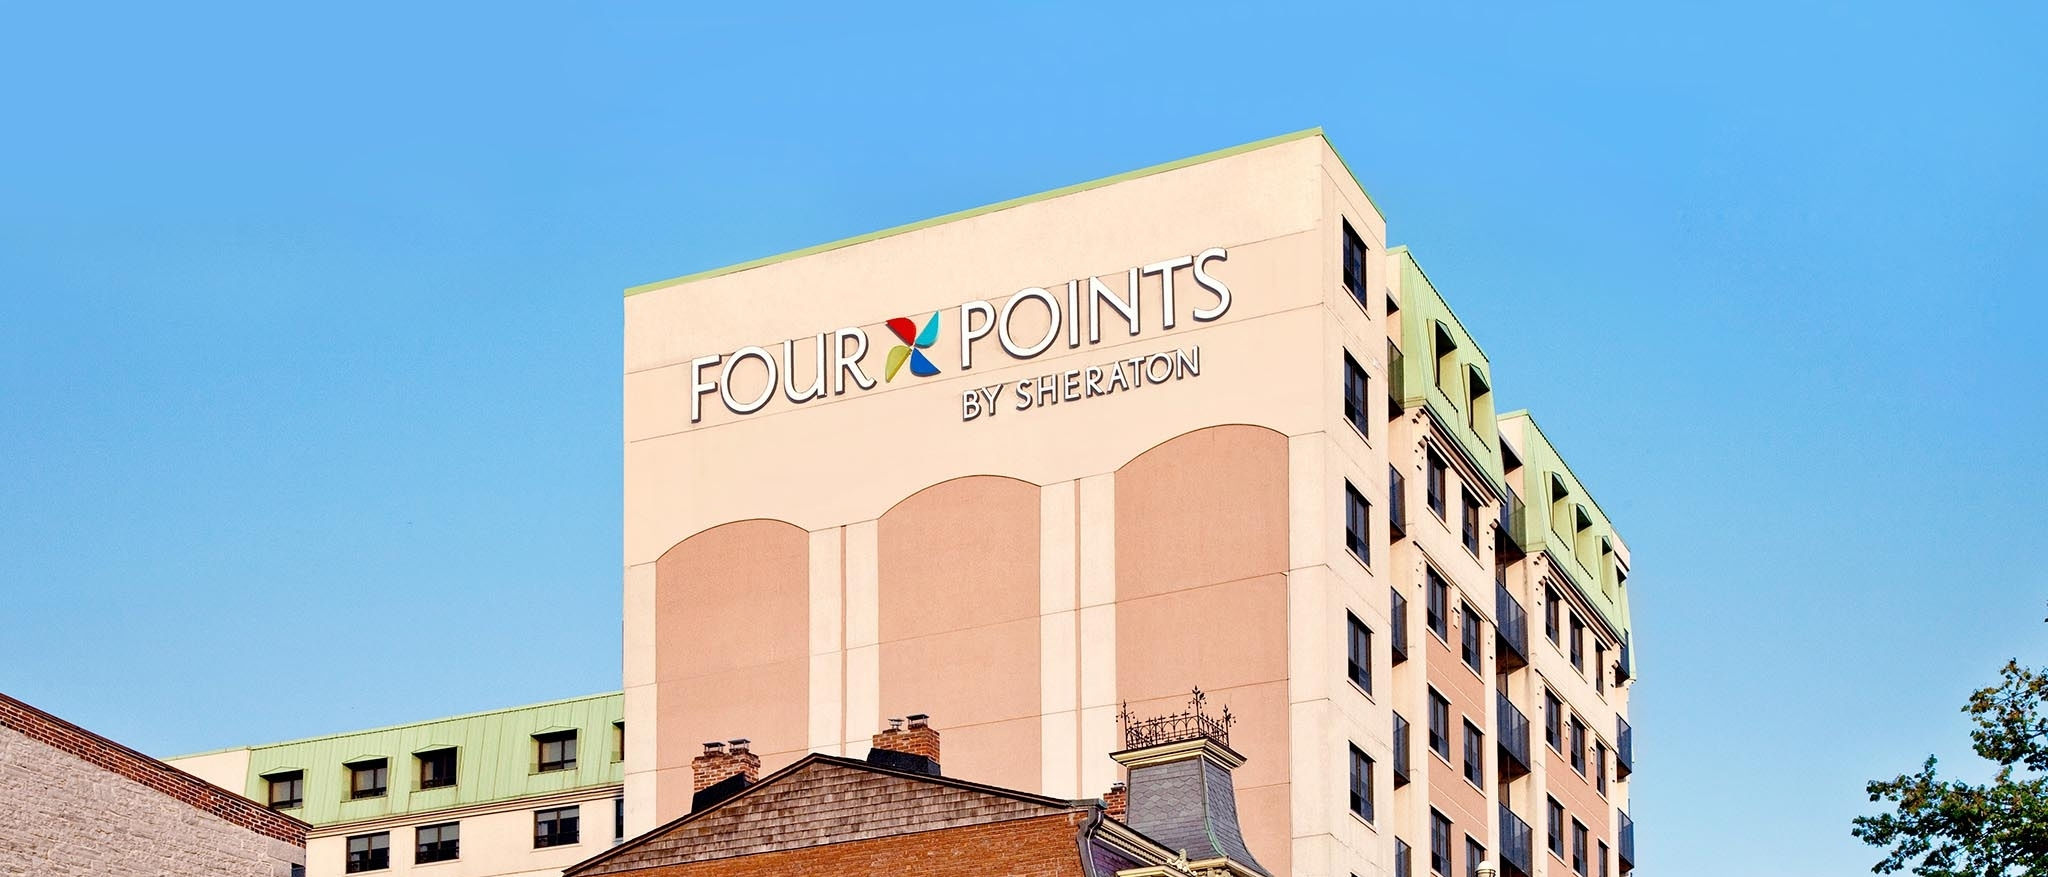 Four Points by Sheraton Kingston - Hotel Exterior